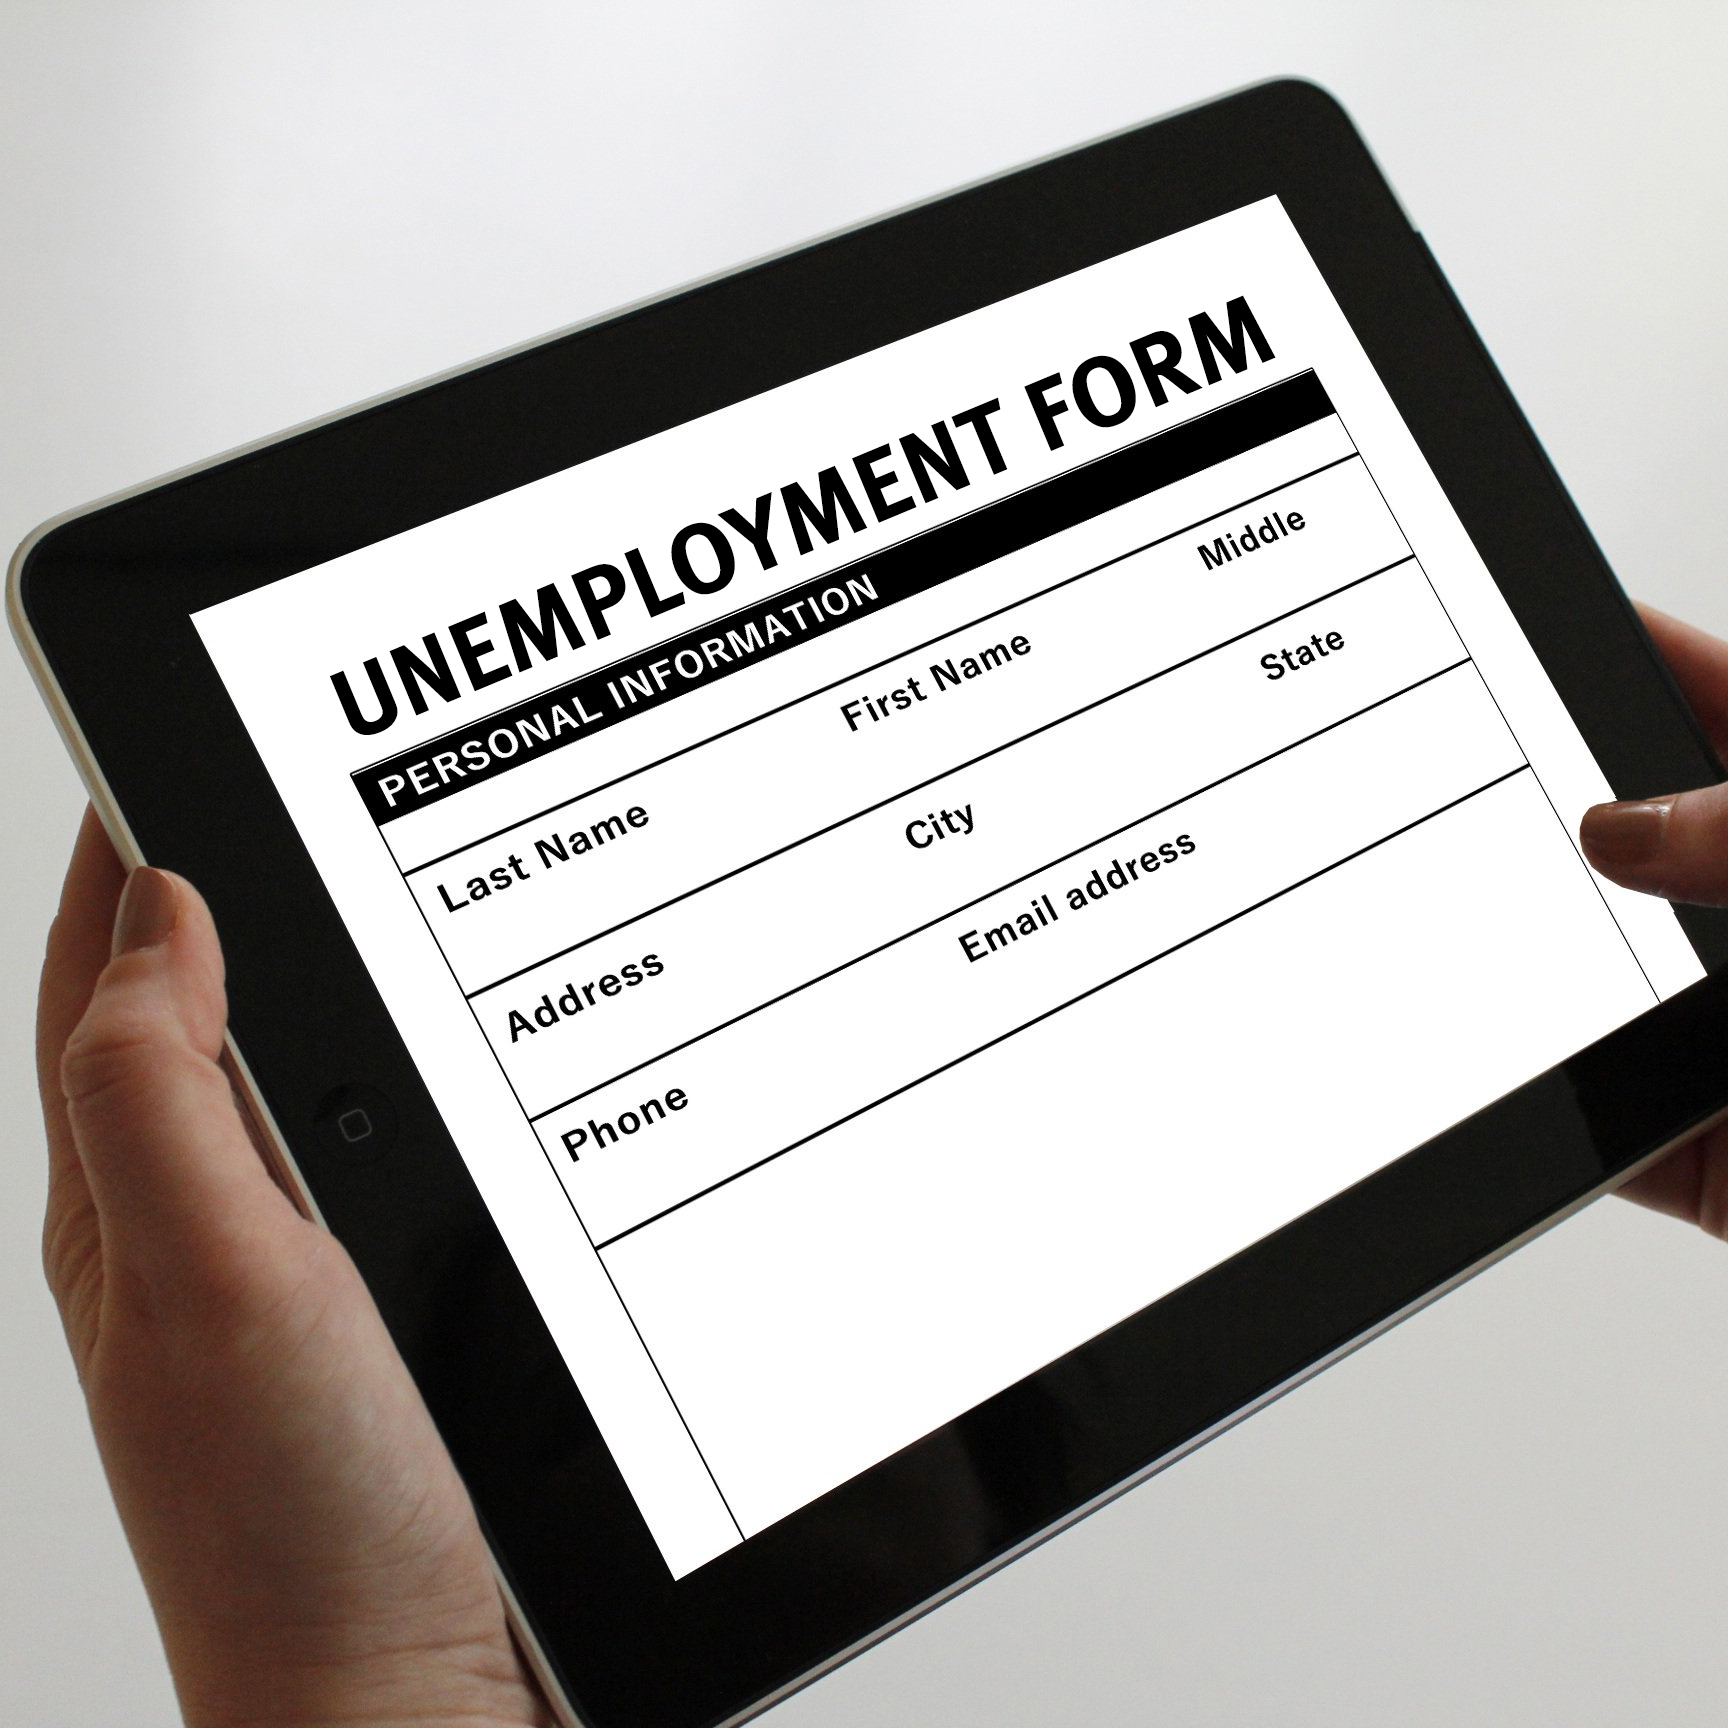 hands holding a tablet with an unemployment form on it